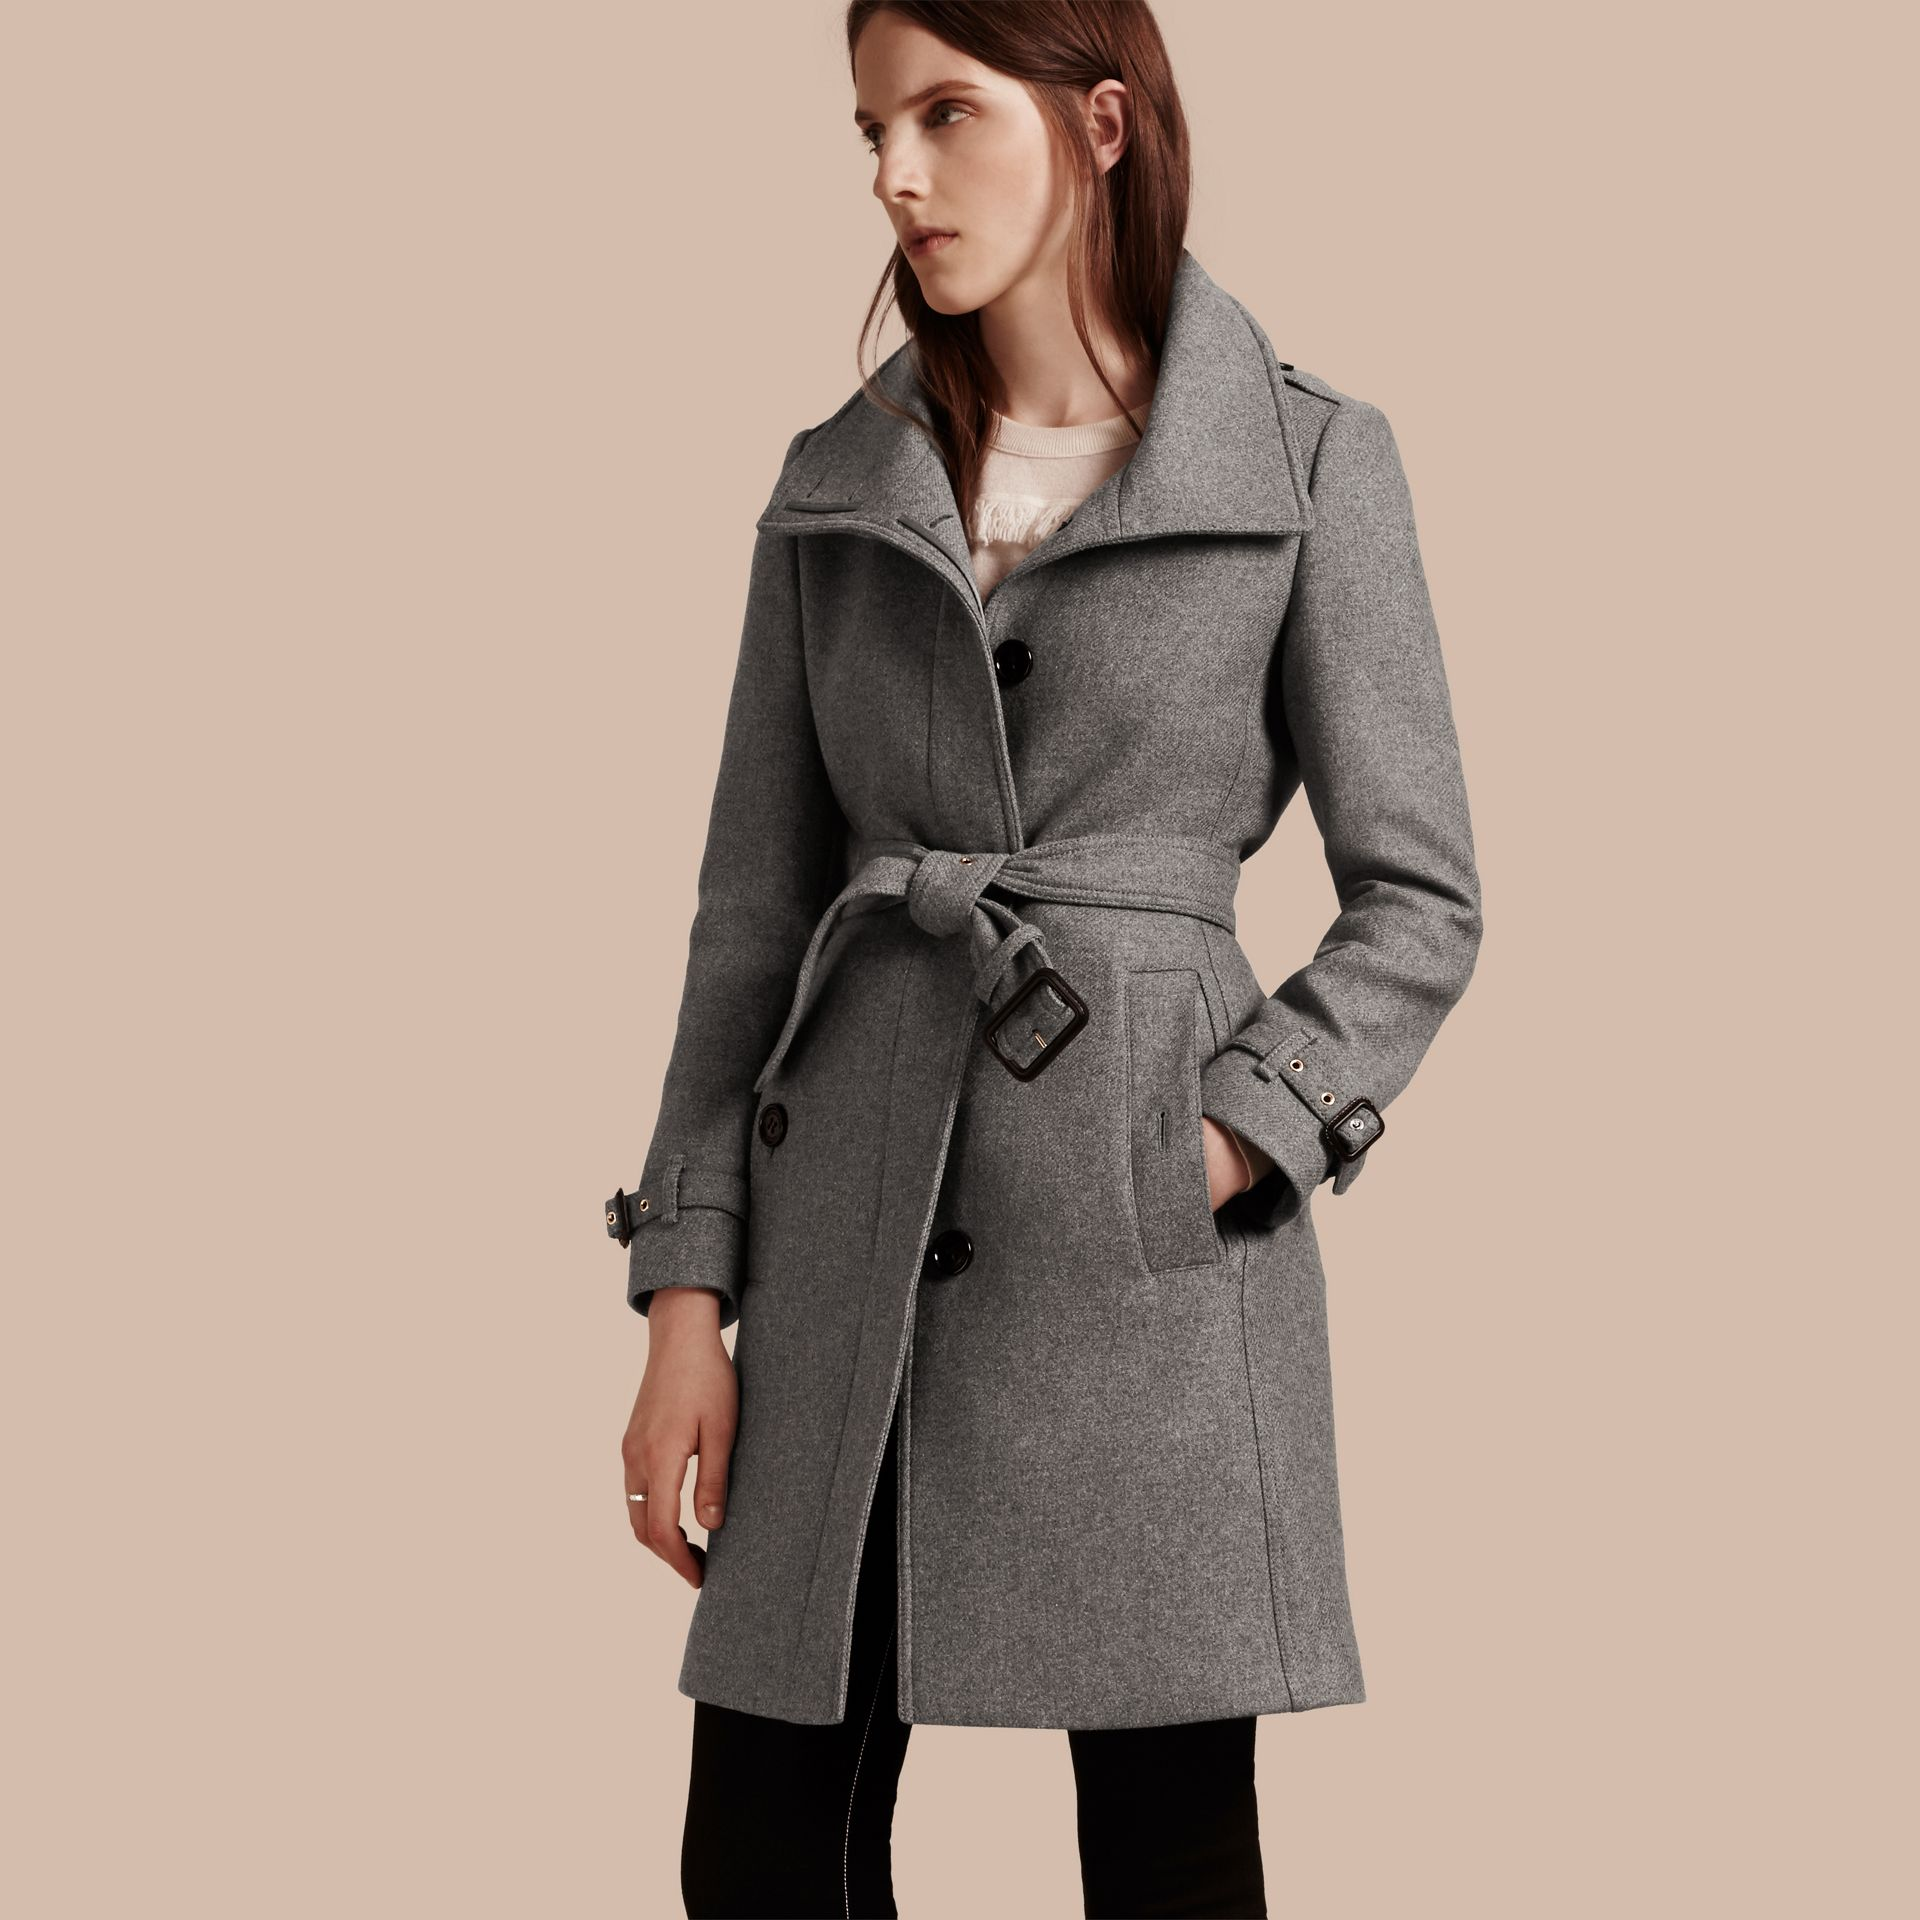 Steel grey melange Technical Wool Cashmere Funnel Neck Coat Steel Grey Melange - gallery image 1